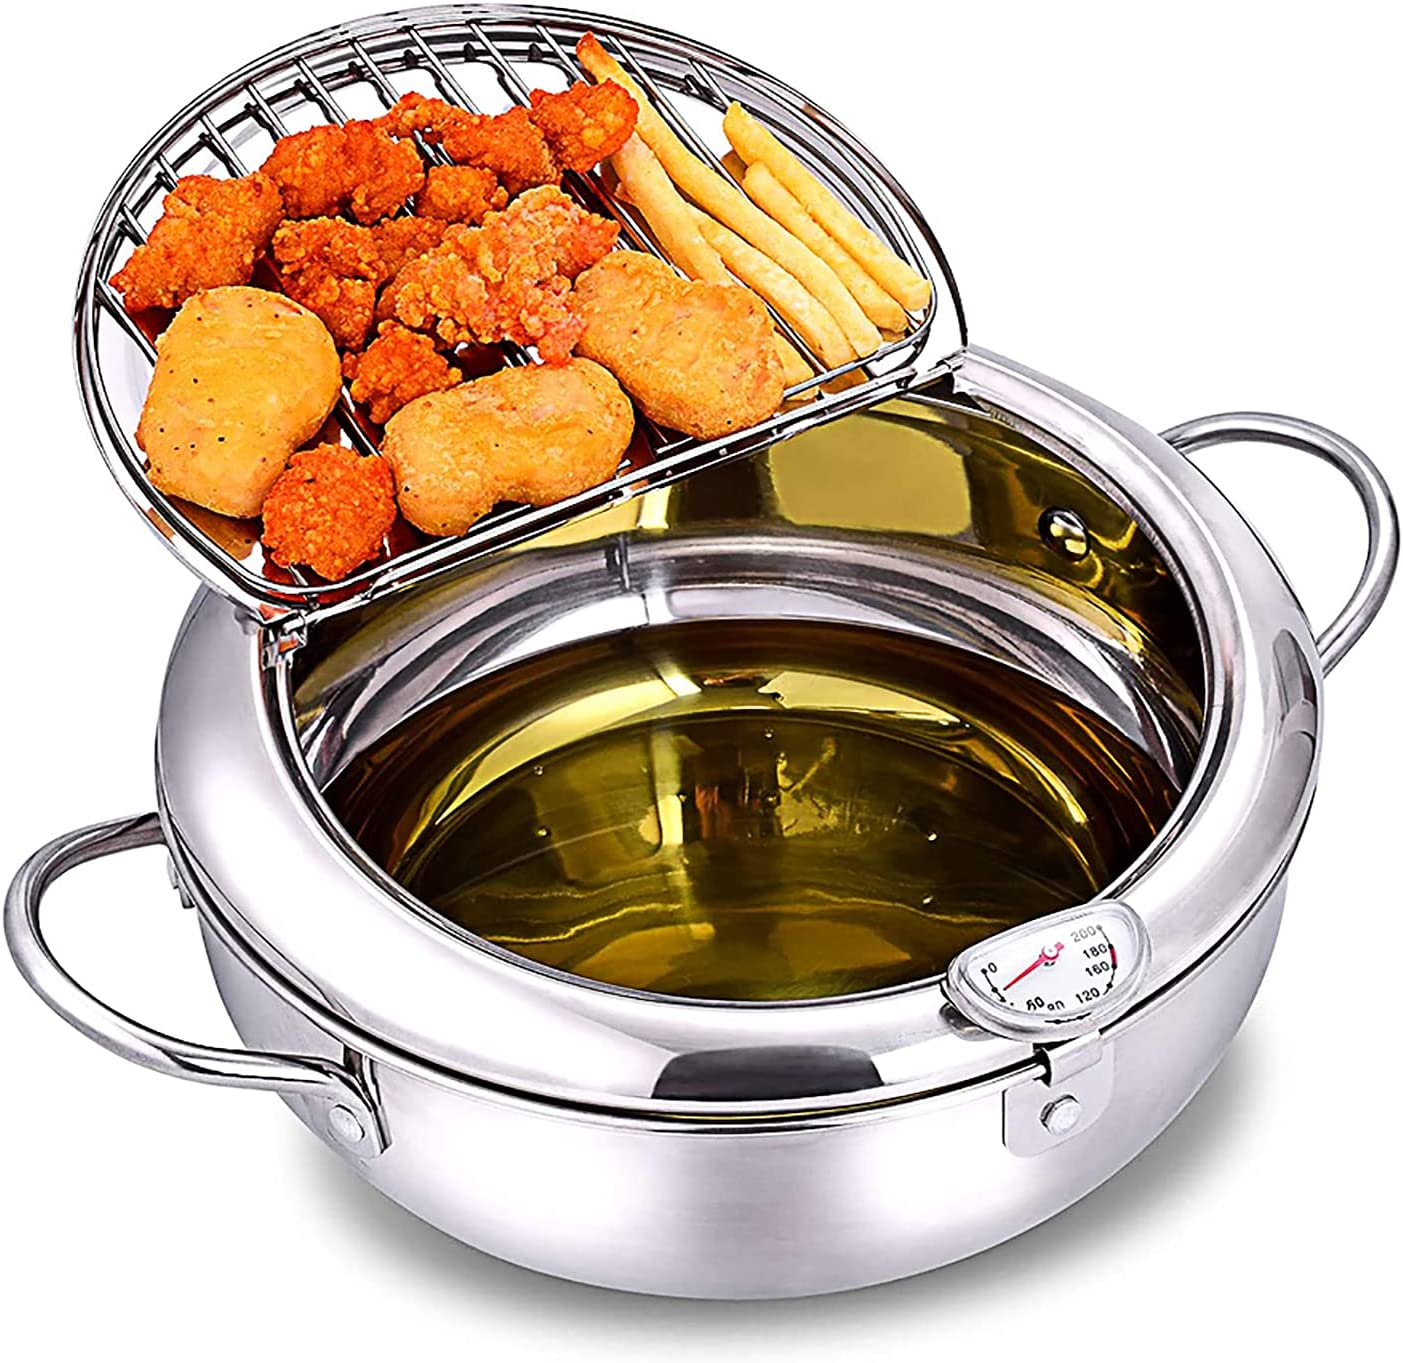 KIDYBELL Deep Fryer Pan 304 Stainless Steel Tempura Frying Pot Japanese Style Fryer With Thermometer,Lid and Oil Drip Rack(24cm/9.4inch)